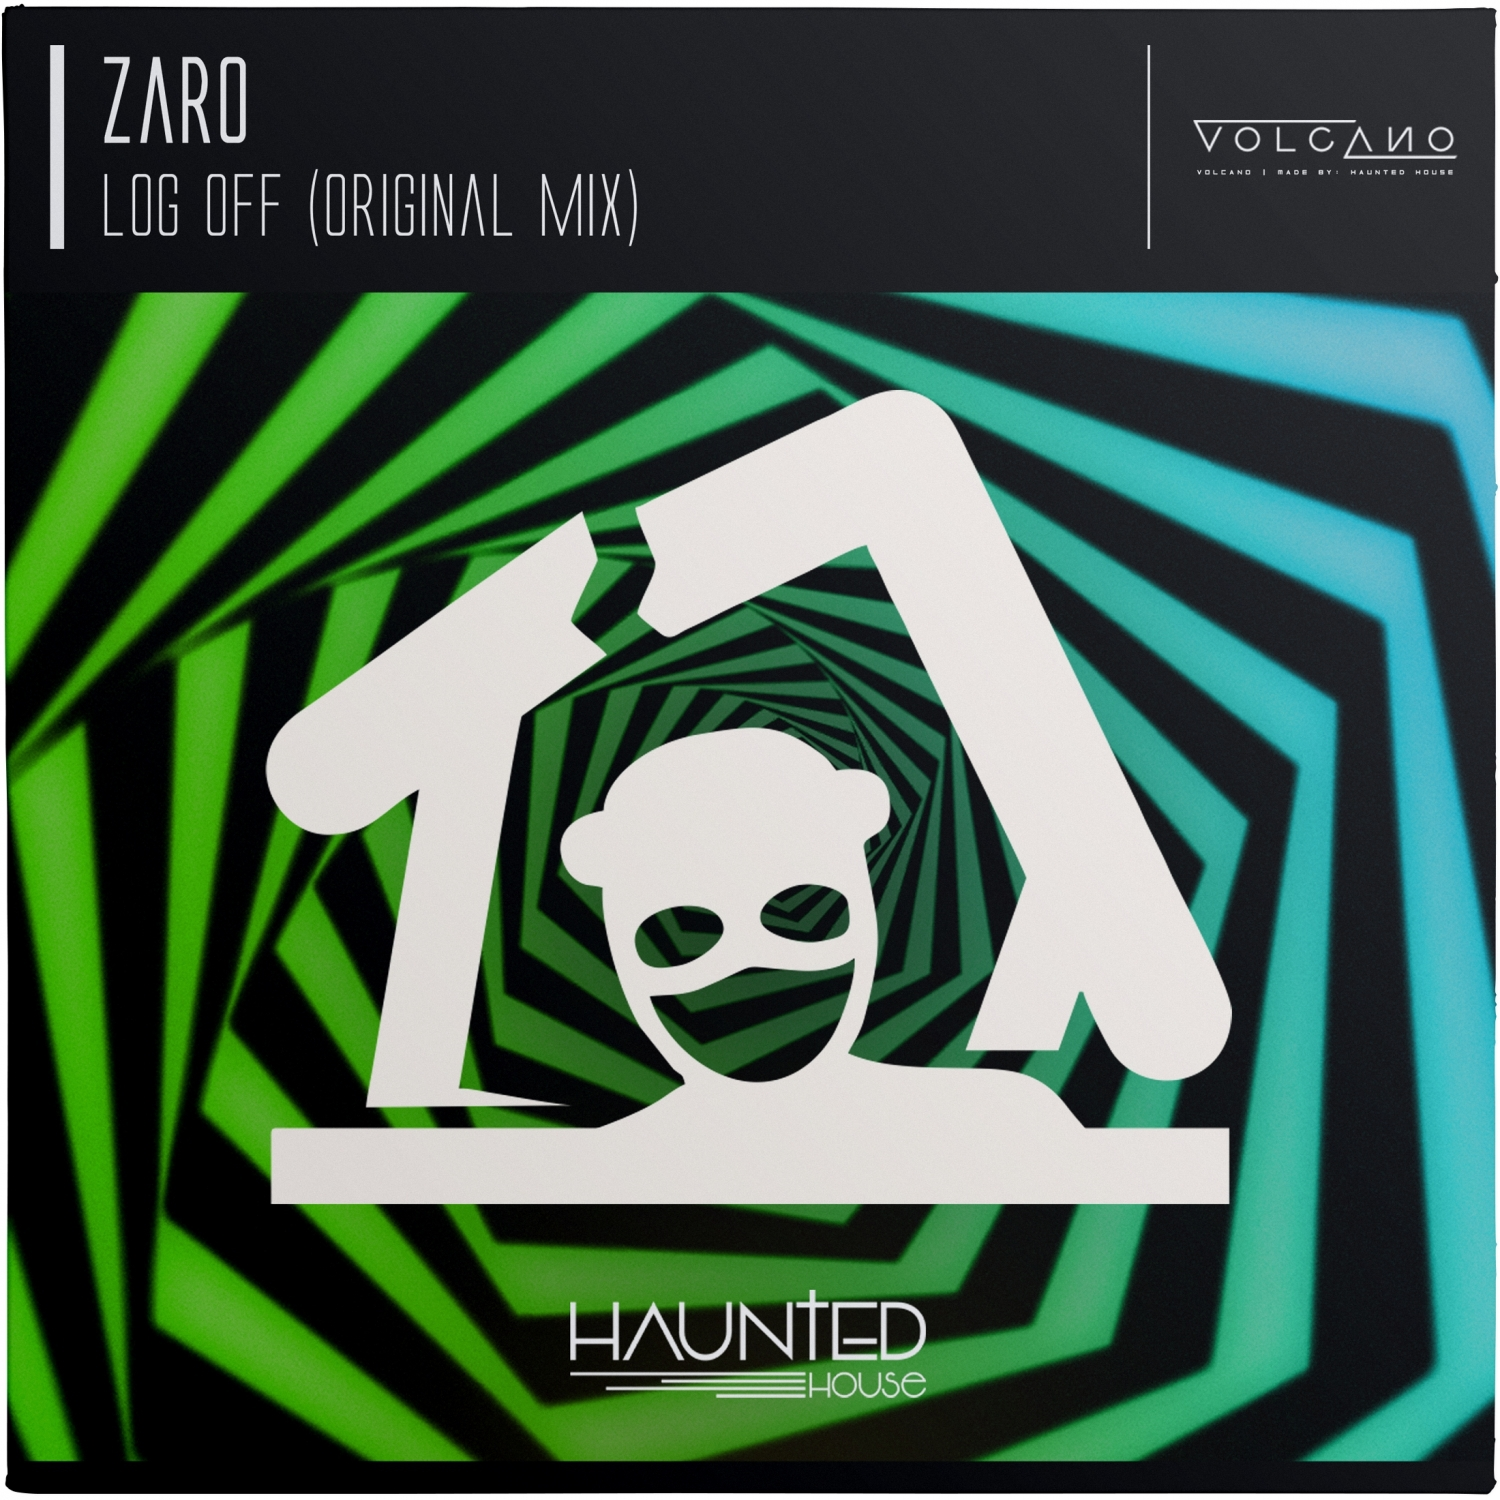 Zaro - Log Off (Original Mix)